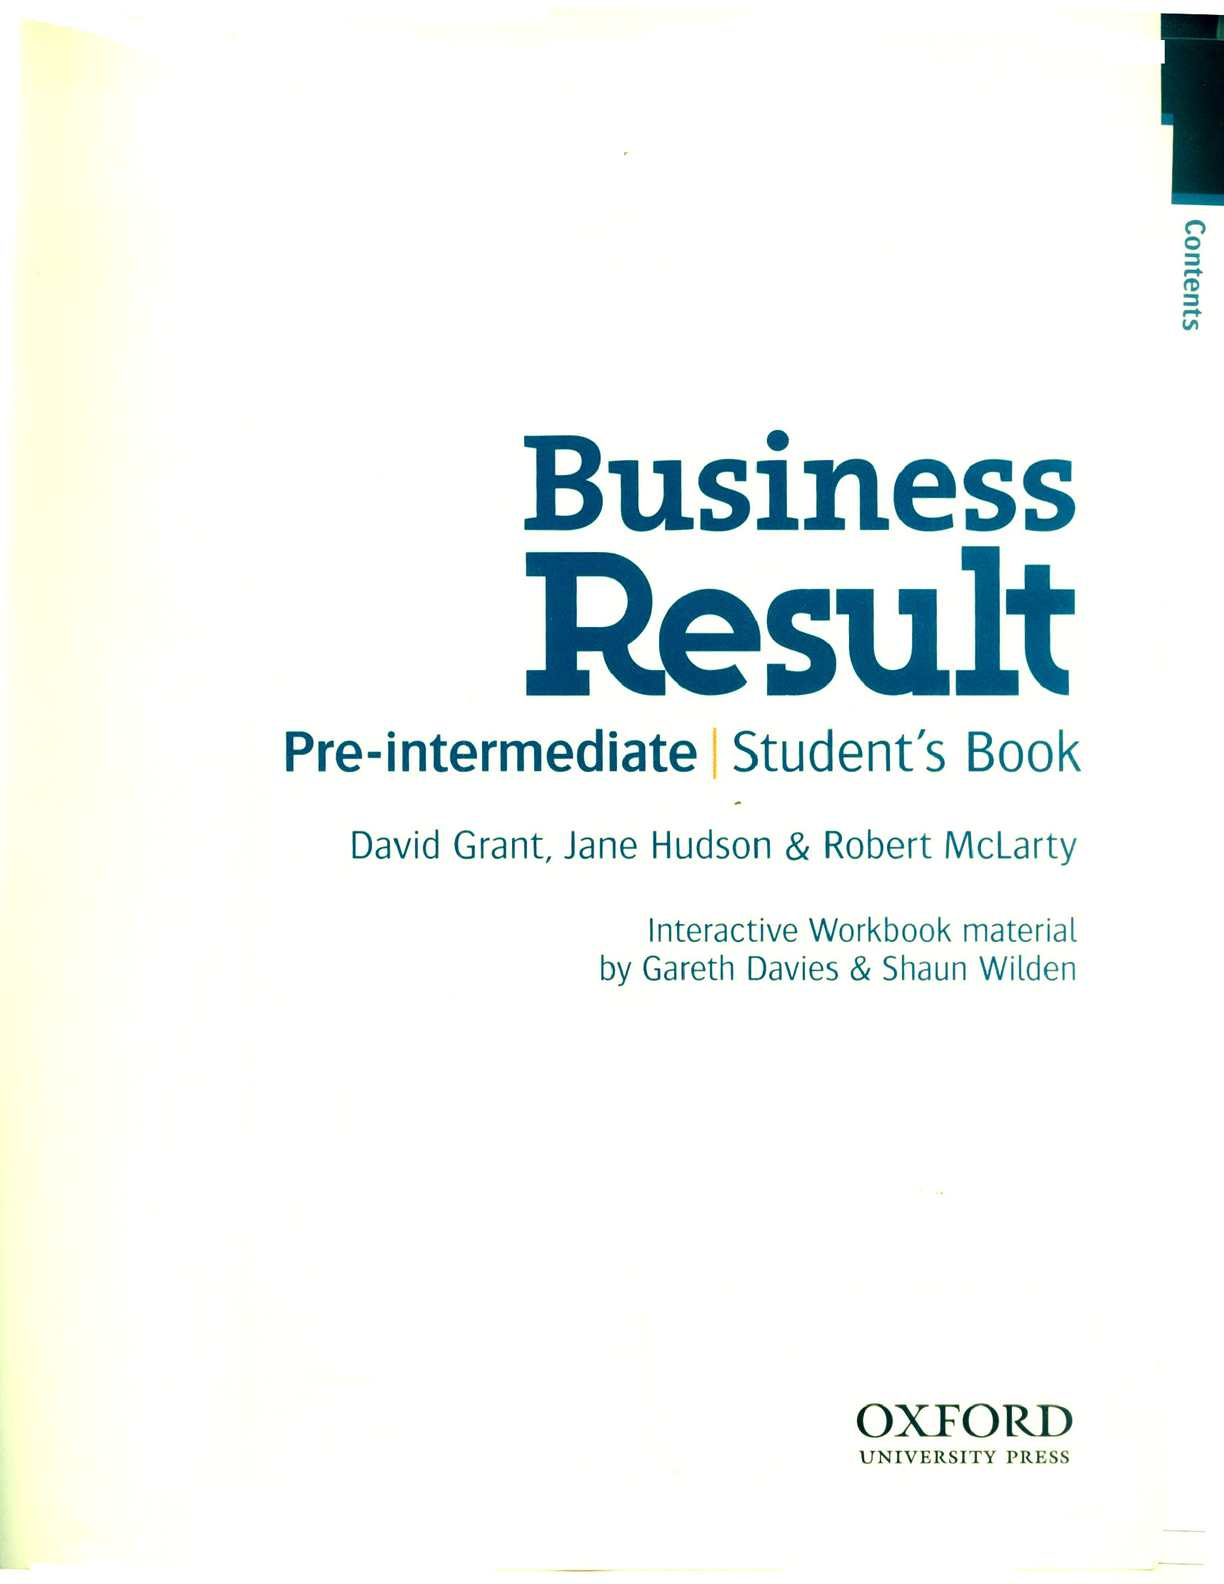 Решебник pre-intermediate workbook business result